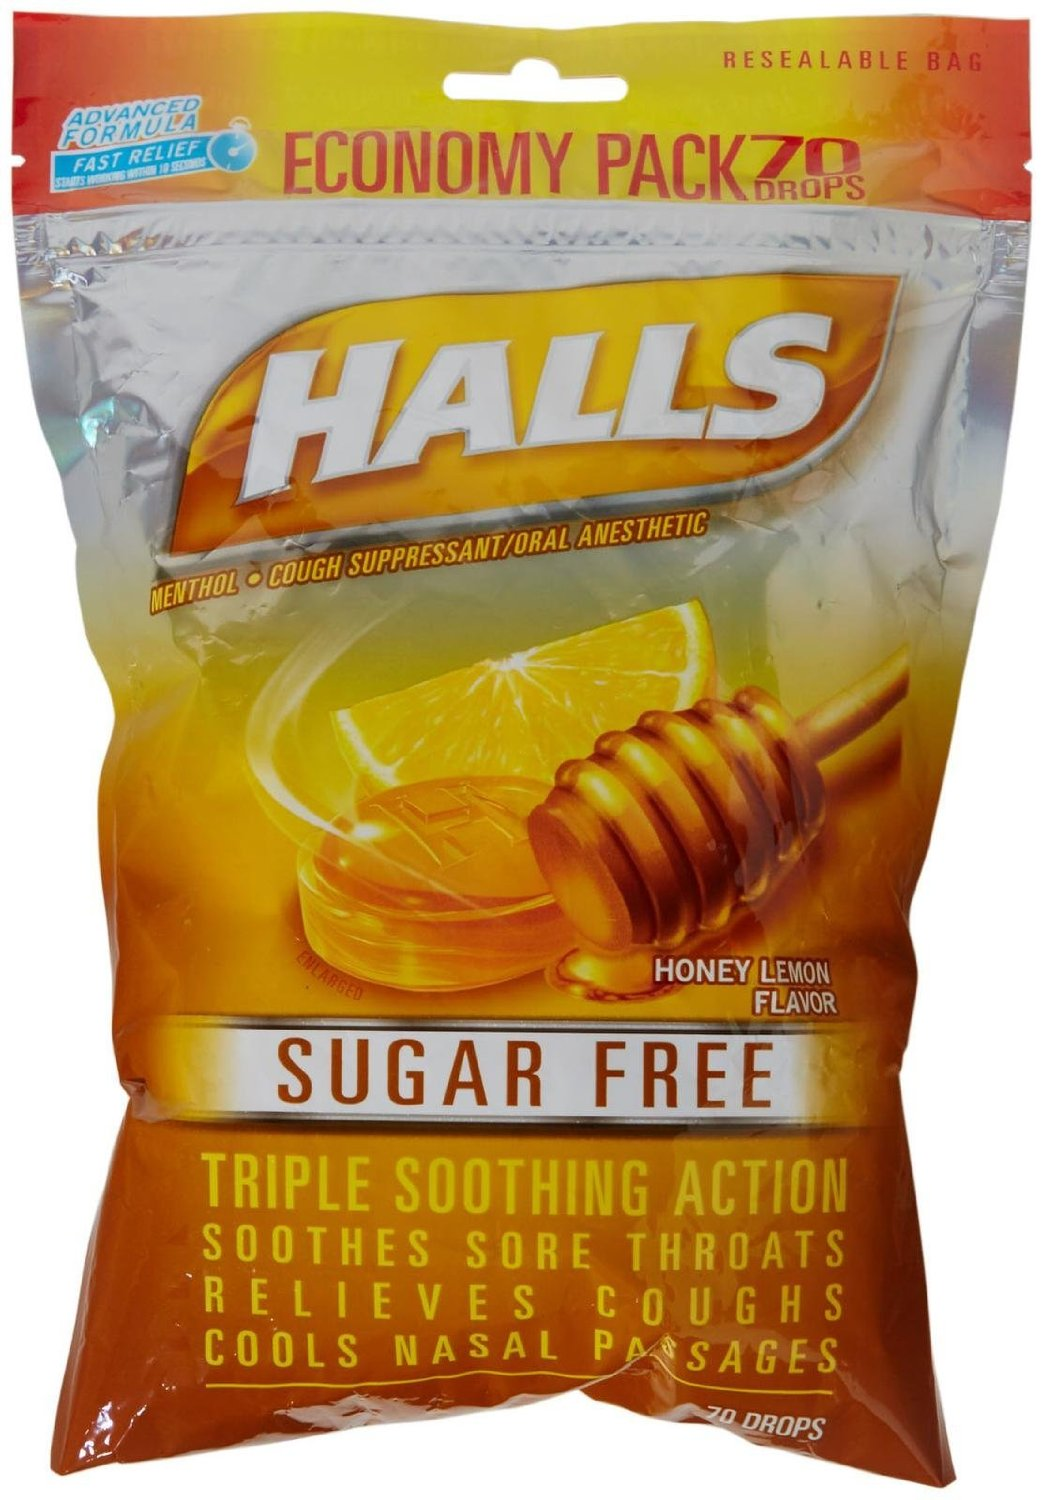 Halls Menthol Cough Suppressant Drop-Honey-Lemon, Sugar Free-70 pc